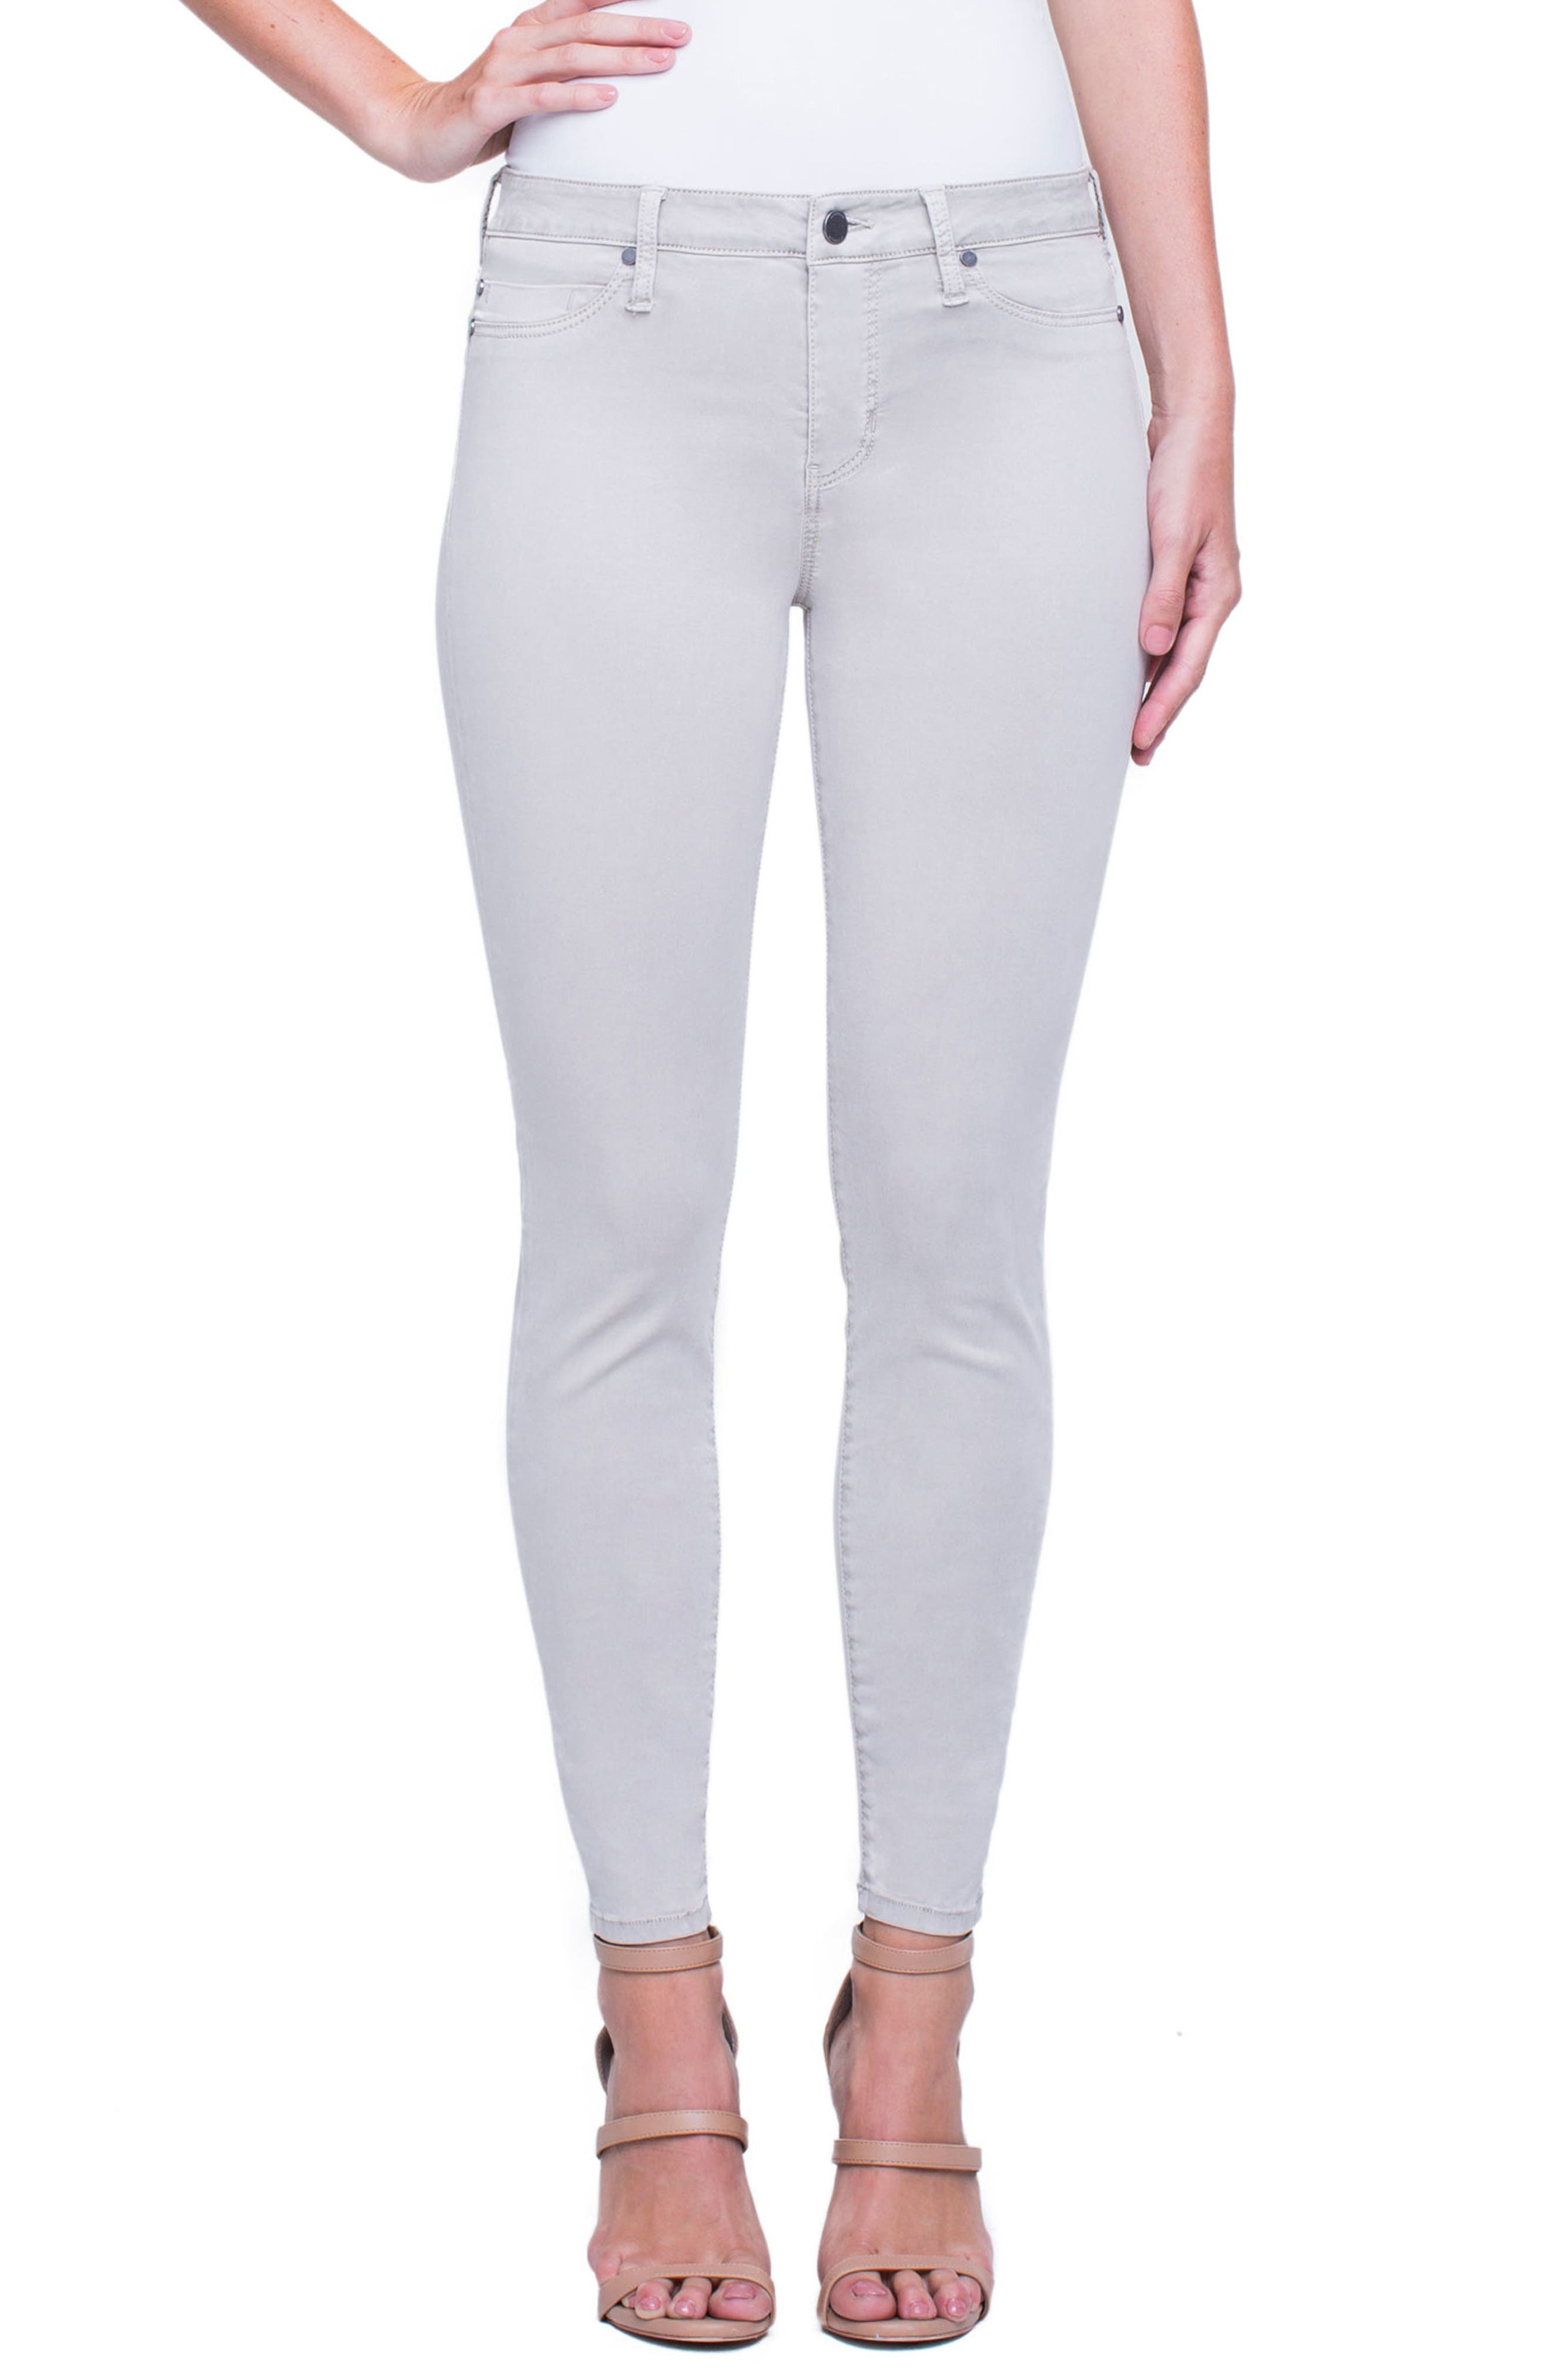 Liverpool Jeans Company Madonna Ankle Jeans